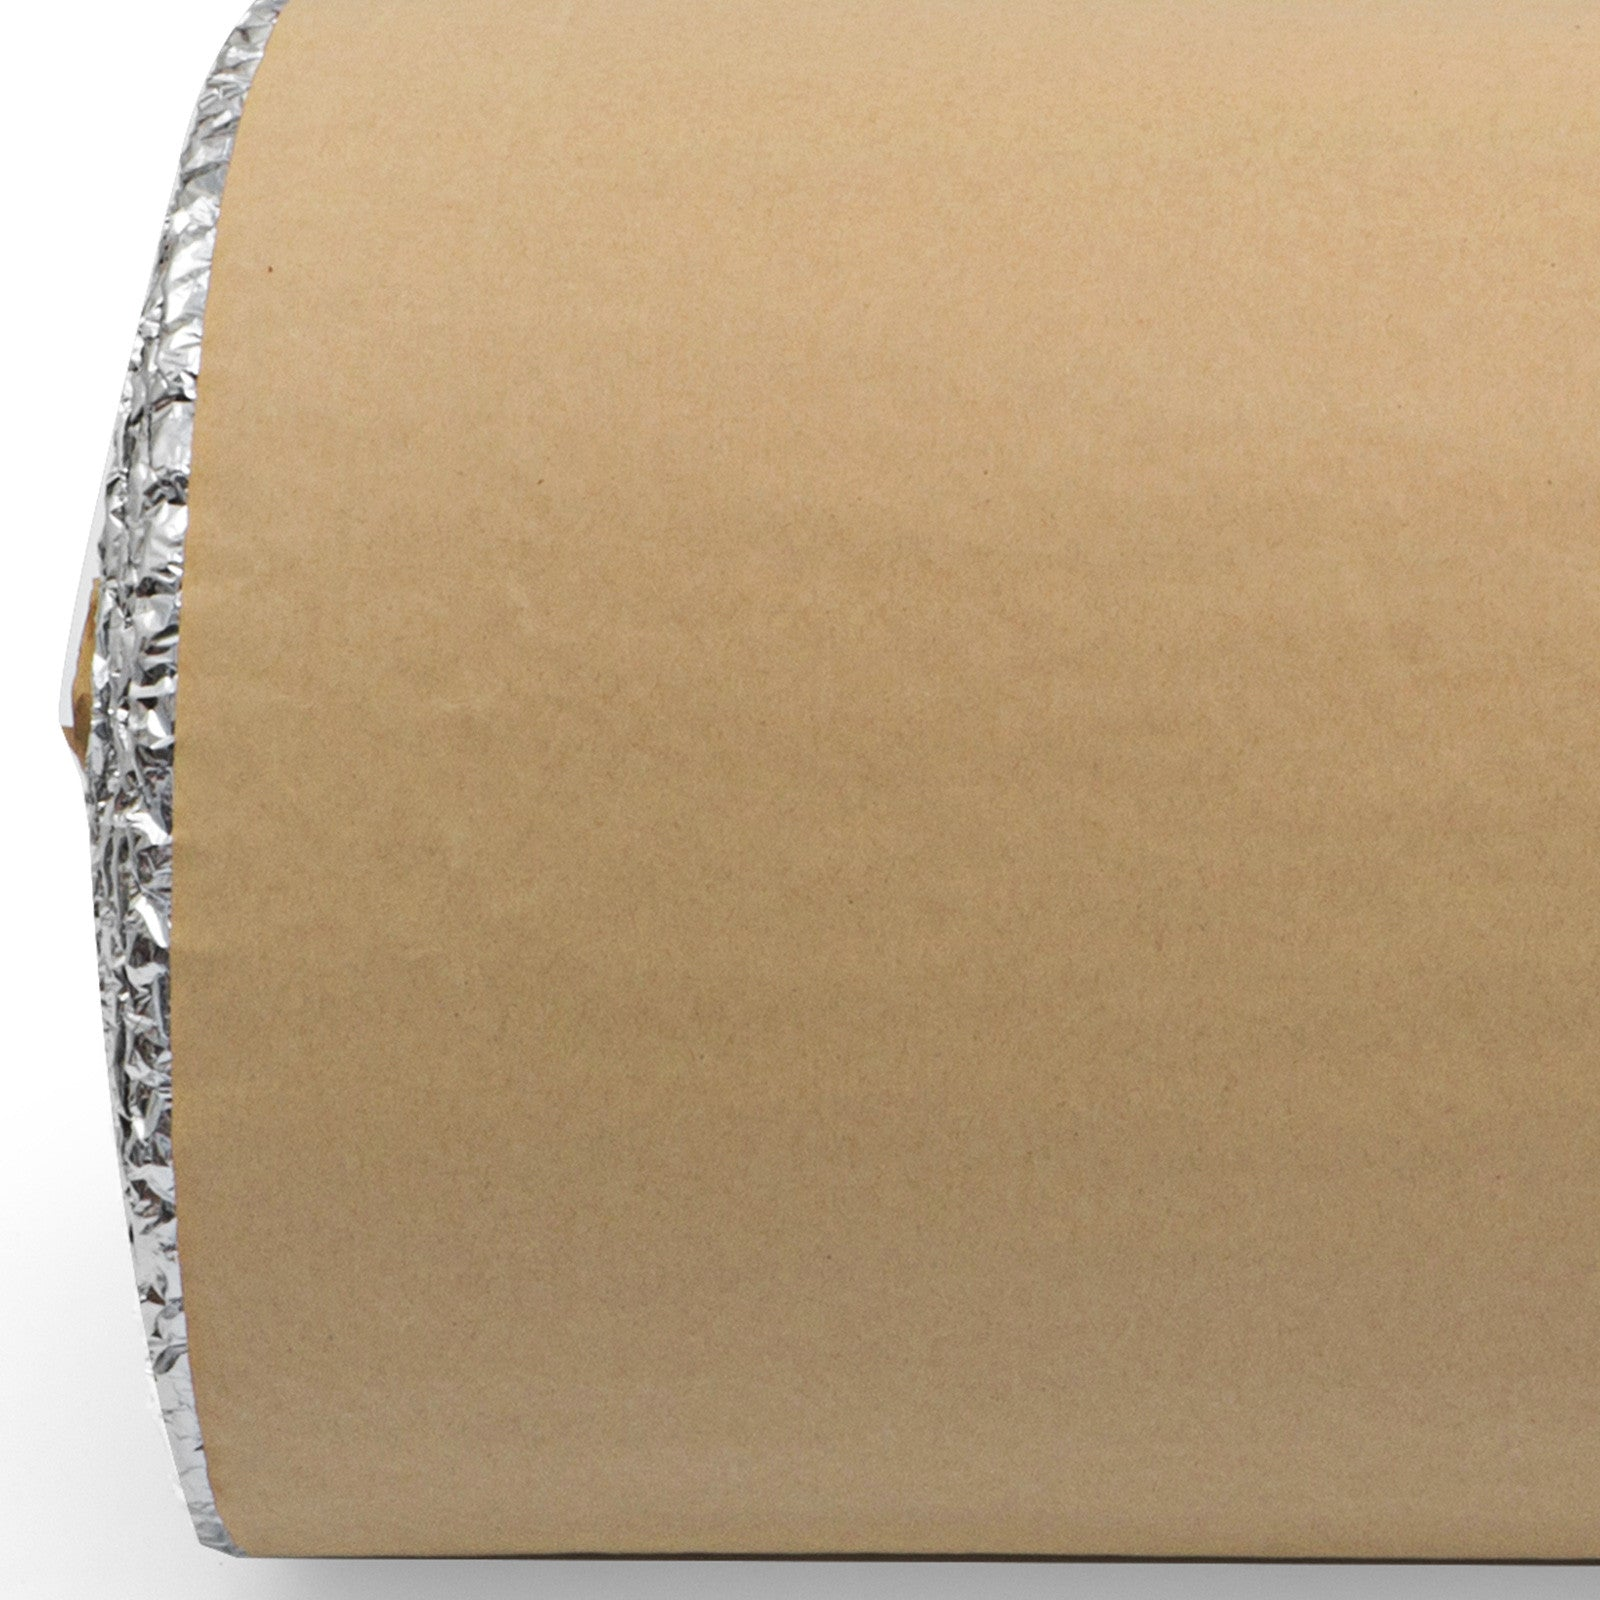 Self Adhesive Bubble Foil Insulation 85ftx40in Wall Insulation Lightweight